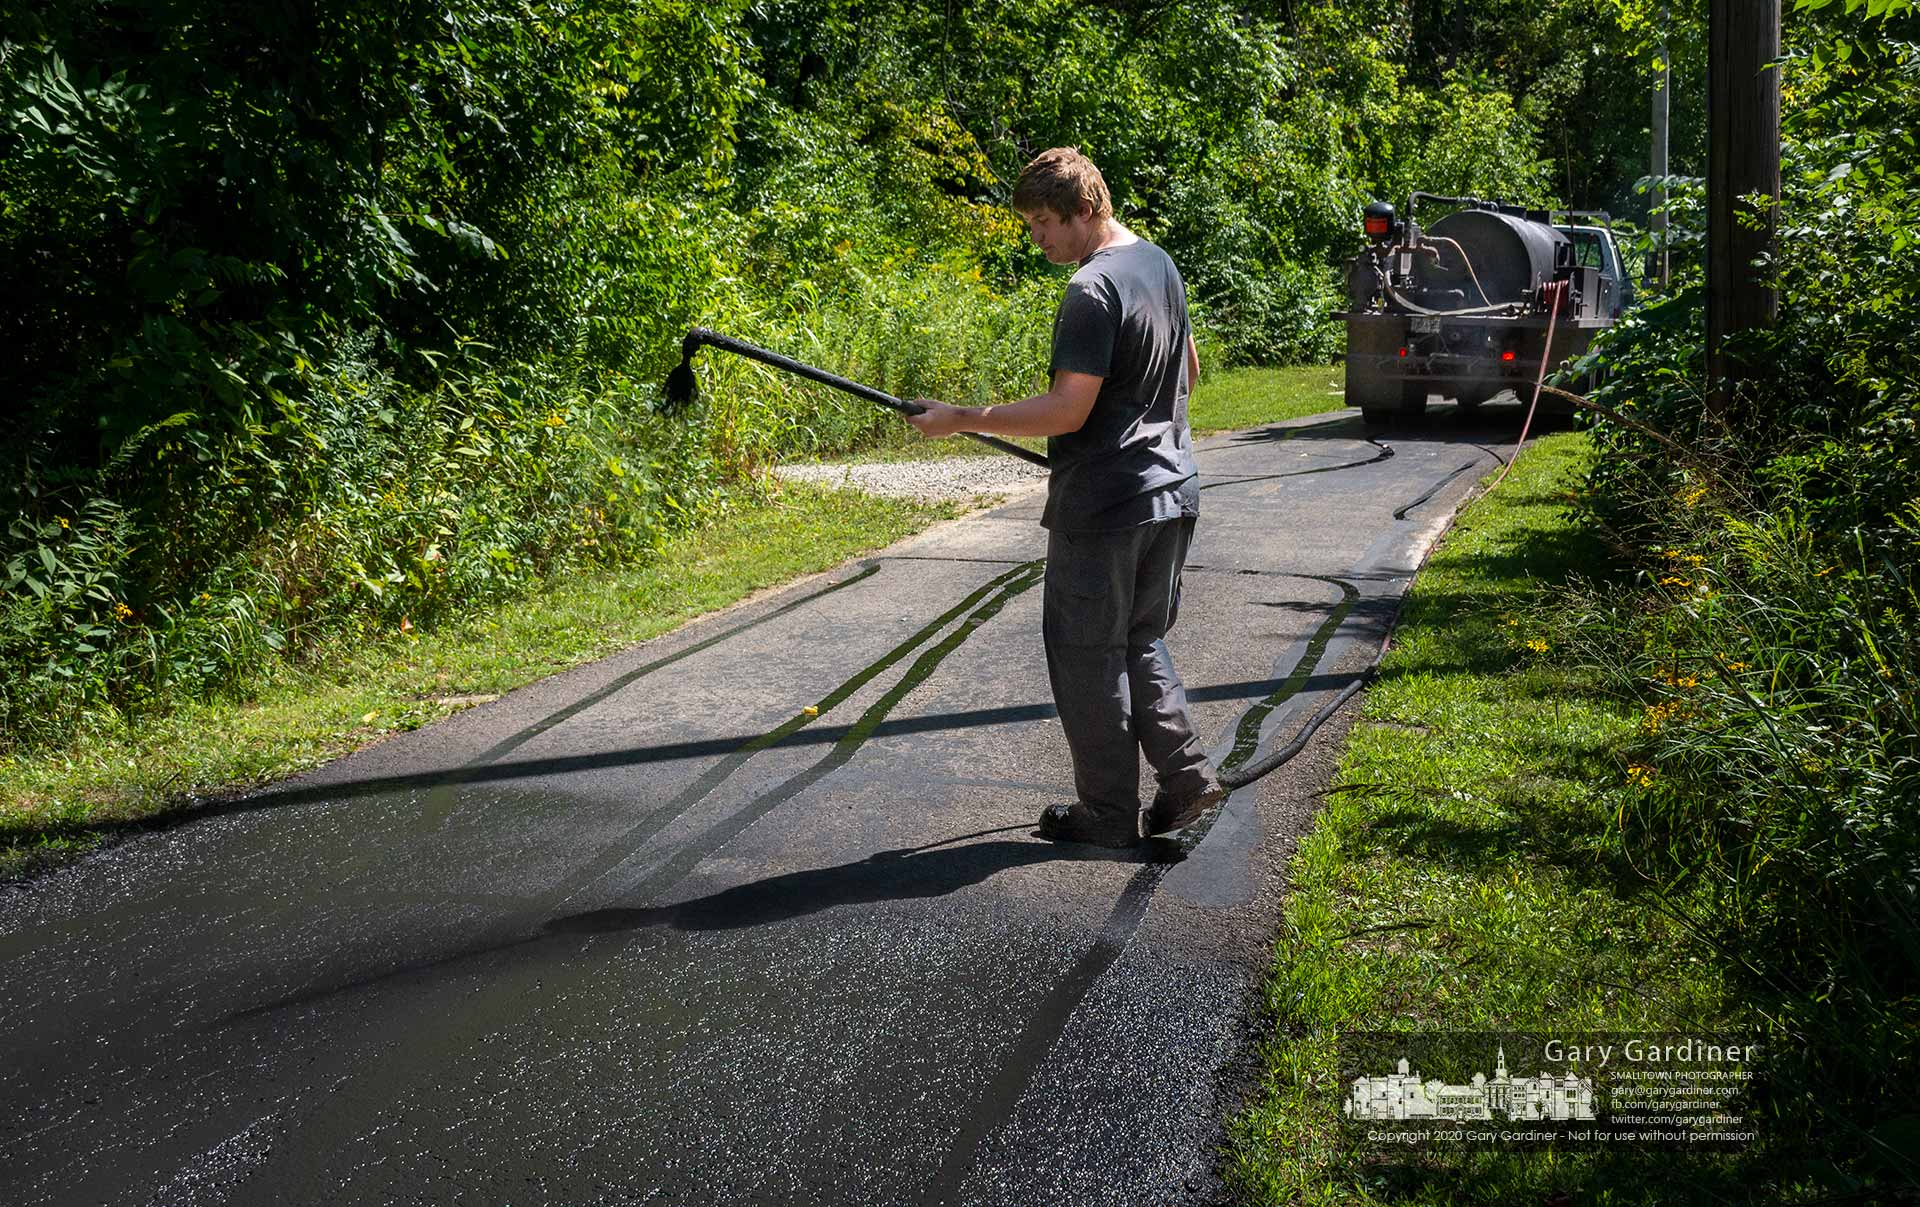 A worker sprays blacktop seal on the section of the bike path between Alum Creek and Otterbein Lake as he moves toward finishing the day on the path near I-270. My Final Photo for Sept. 4, 2020.